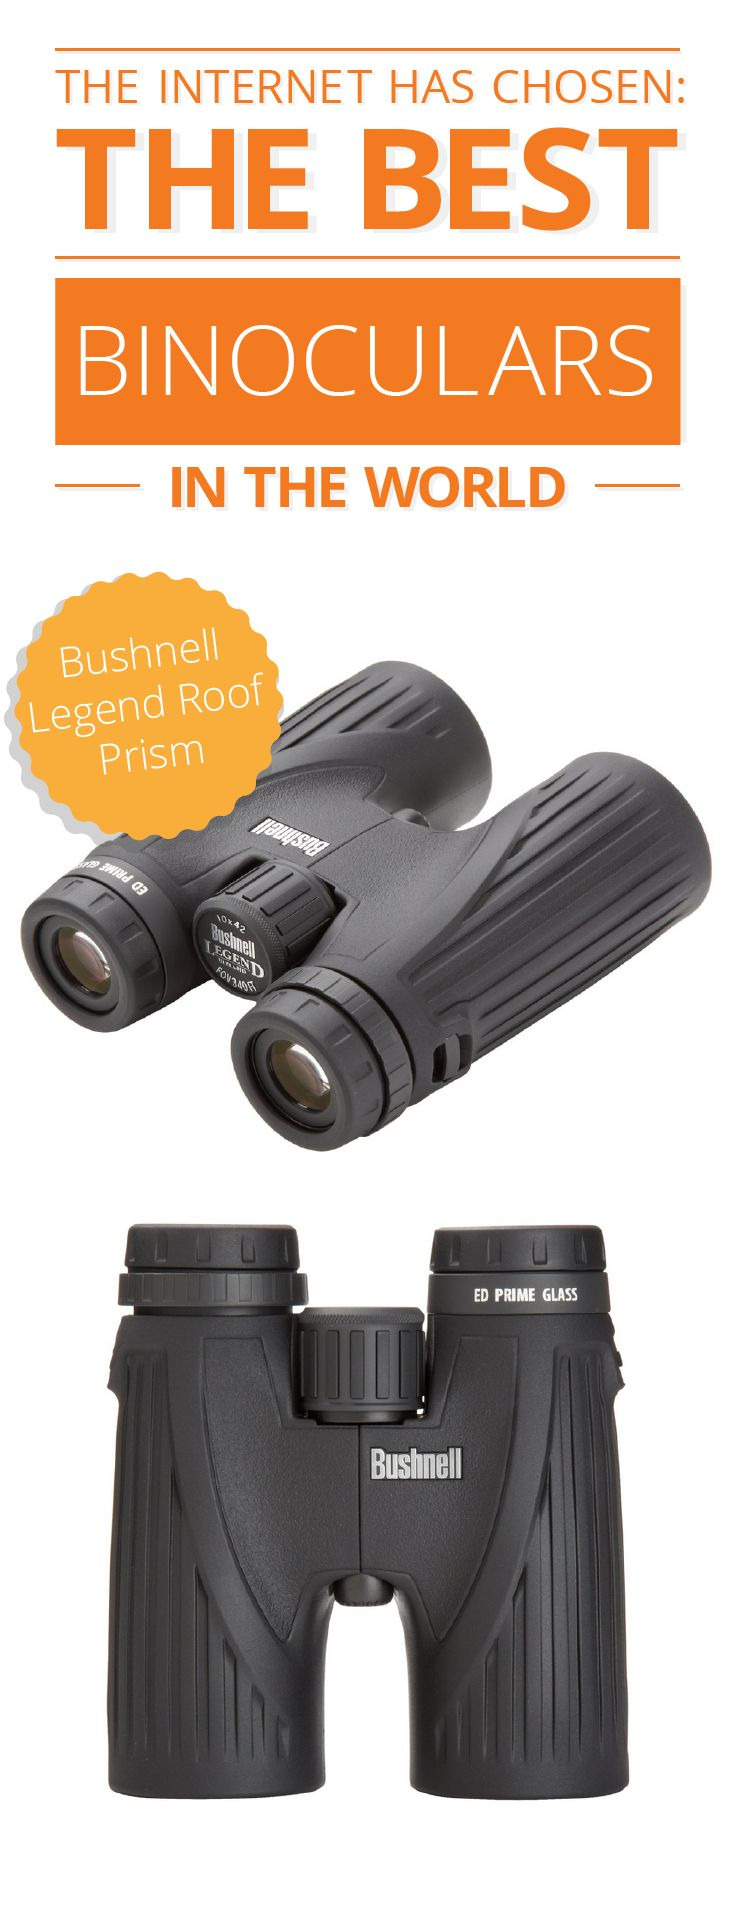 For wildlife enthusiasts, nature lovers, hikers and bird watchers, binoculars are as essential as a good pair of shoes. And finding the right pair is essential in making sure you never miss a thing! Here are the best rated binoculars, as chosen by the internet, and a binocular buying guide to help you choose the right one for you: http://www.comparaboo.com/binoculars?origin=googled2